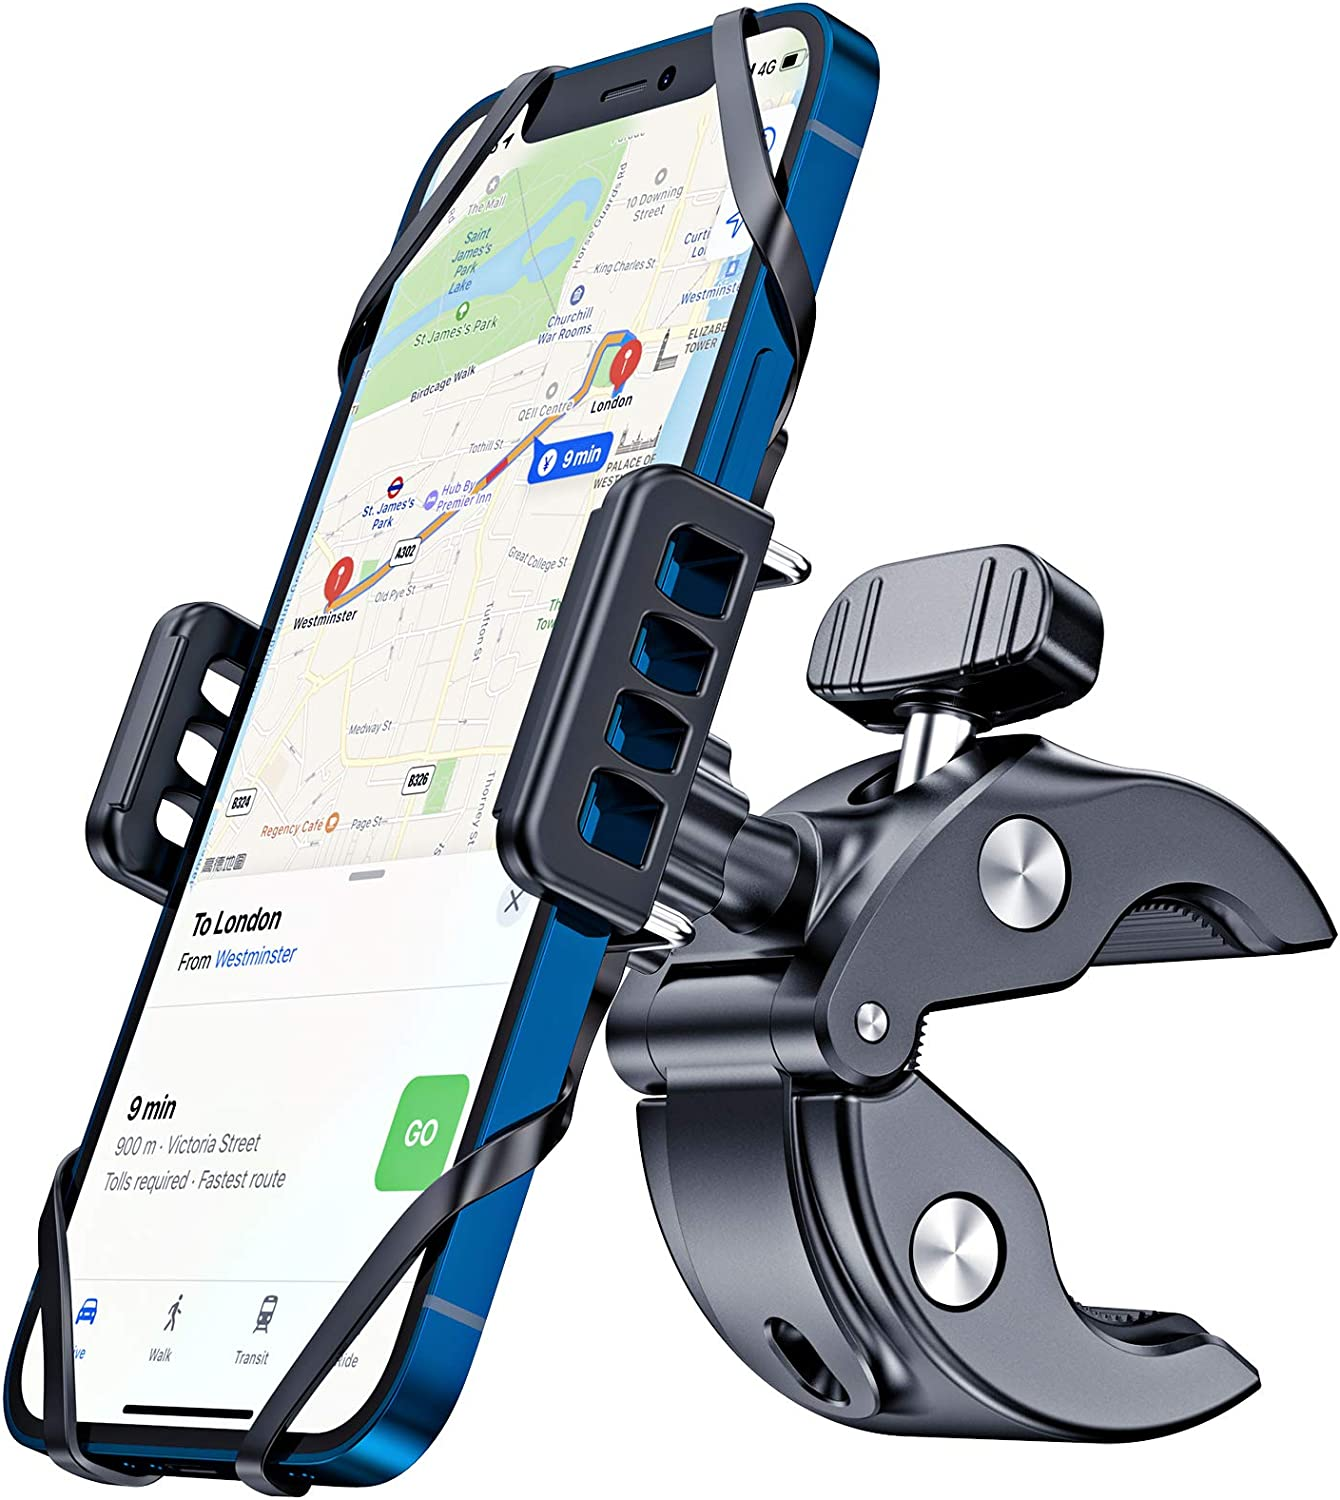 CTYBB Bike & Motorcycle Phone Mount, Super Stable Phone Bike Mount with Universal Mountain Handlebar Cradle Anti-Shake Compatible with iPhone, Samsung or Any Other Smart Phones.